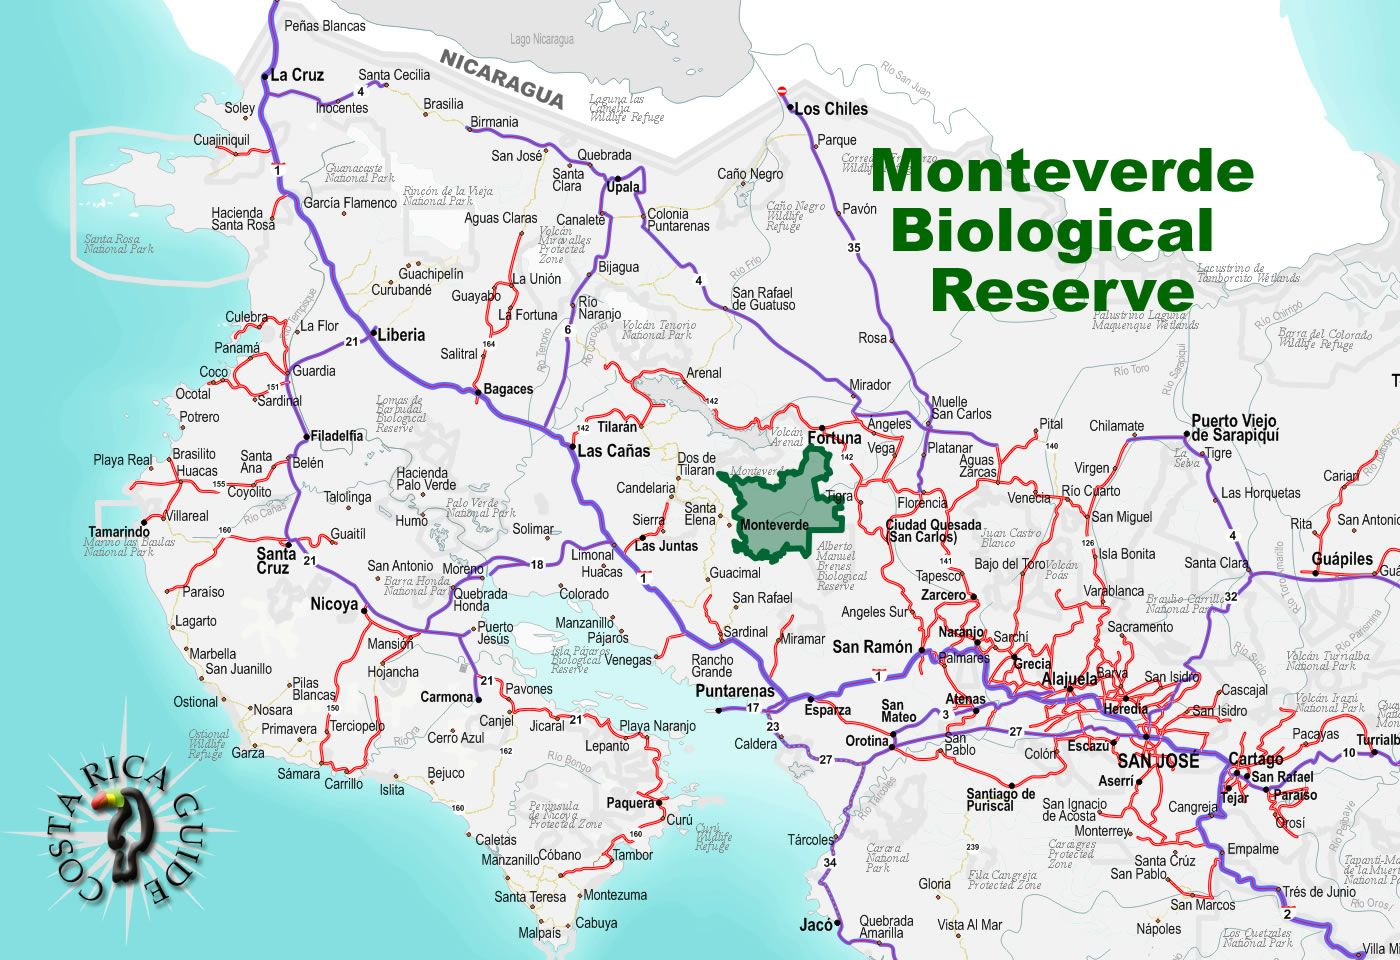 Image result for monteverde costa rica map | Okay, really cool ... on formosa on a map, heard island on a map, atlantic ocean on a map, chile on a map, guyana on a map, new south wales on a map, british north borneo on a map, honduras on a map, dr congo on a map, cuba on a map, the sudan on a map, central america on a map, the seychelles on a map, nicaragua on a map, germany on a map, botswana on a map, sea of cortez on a map, venezuela on a map, southern india on a map, galapagos islands on a map,